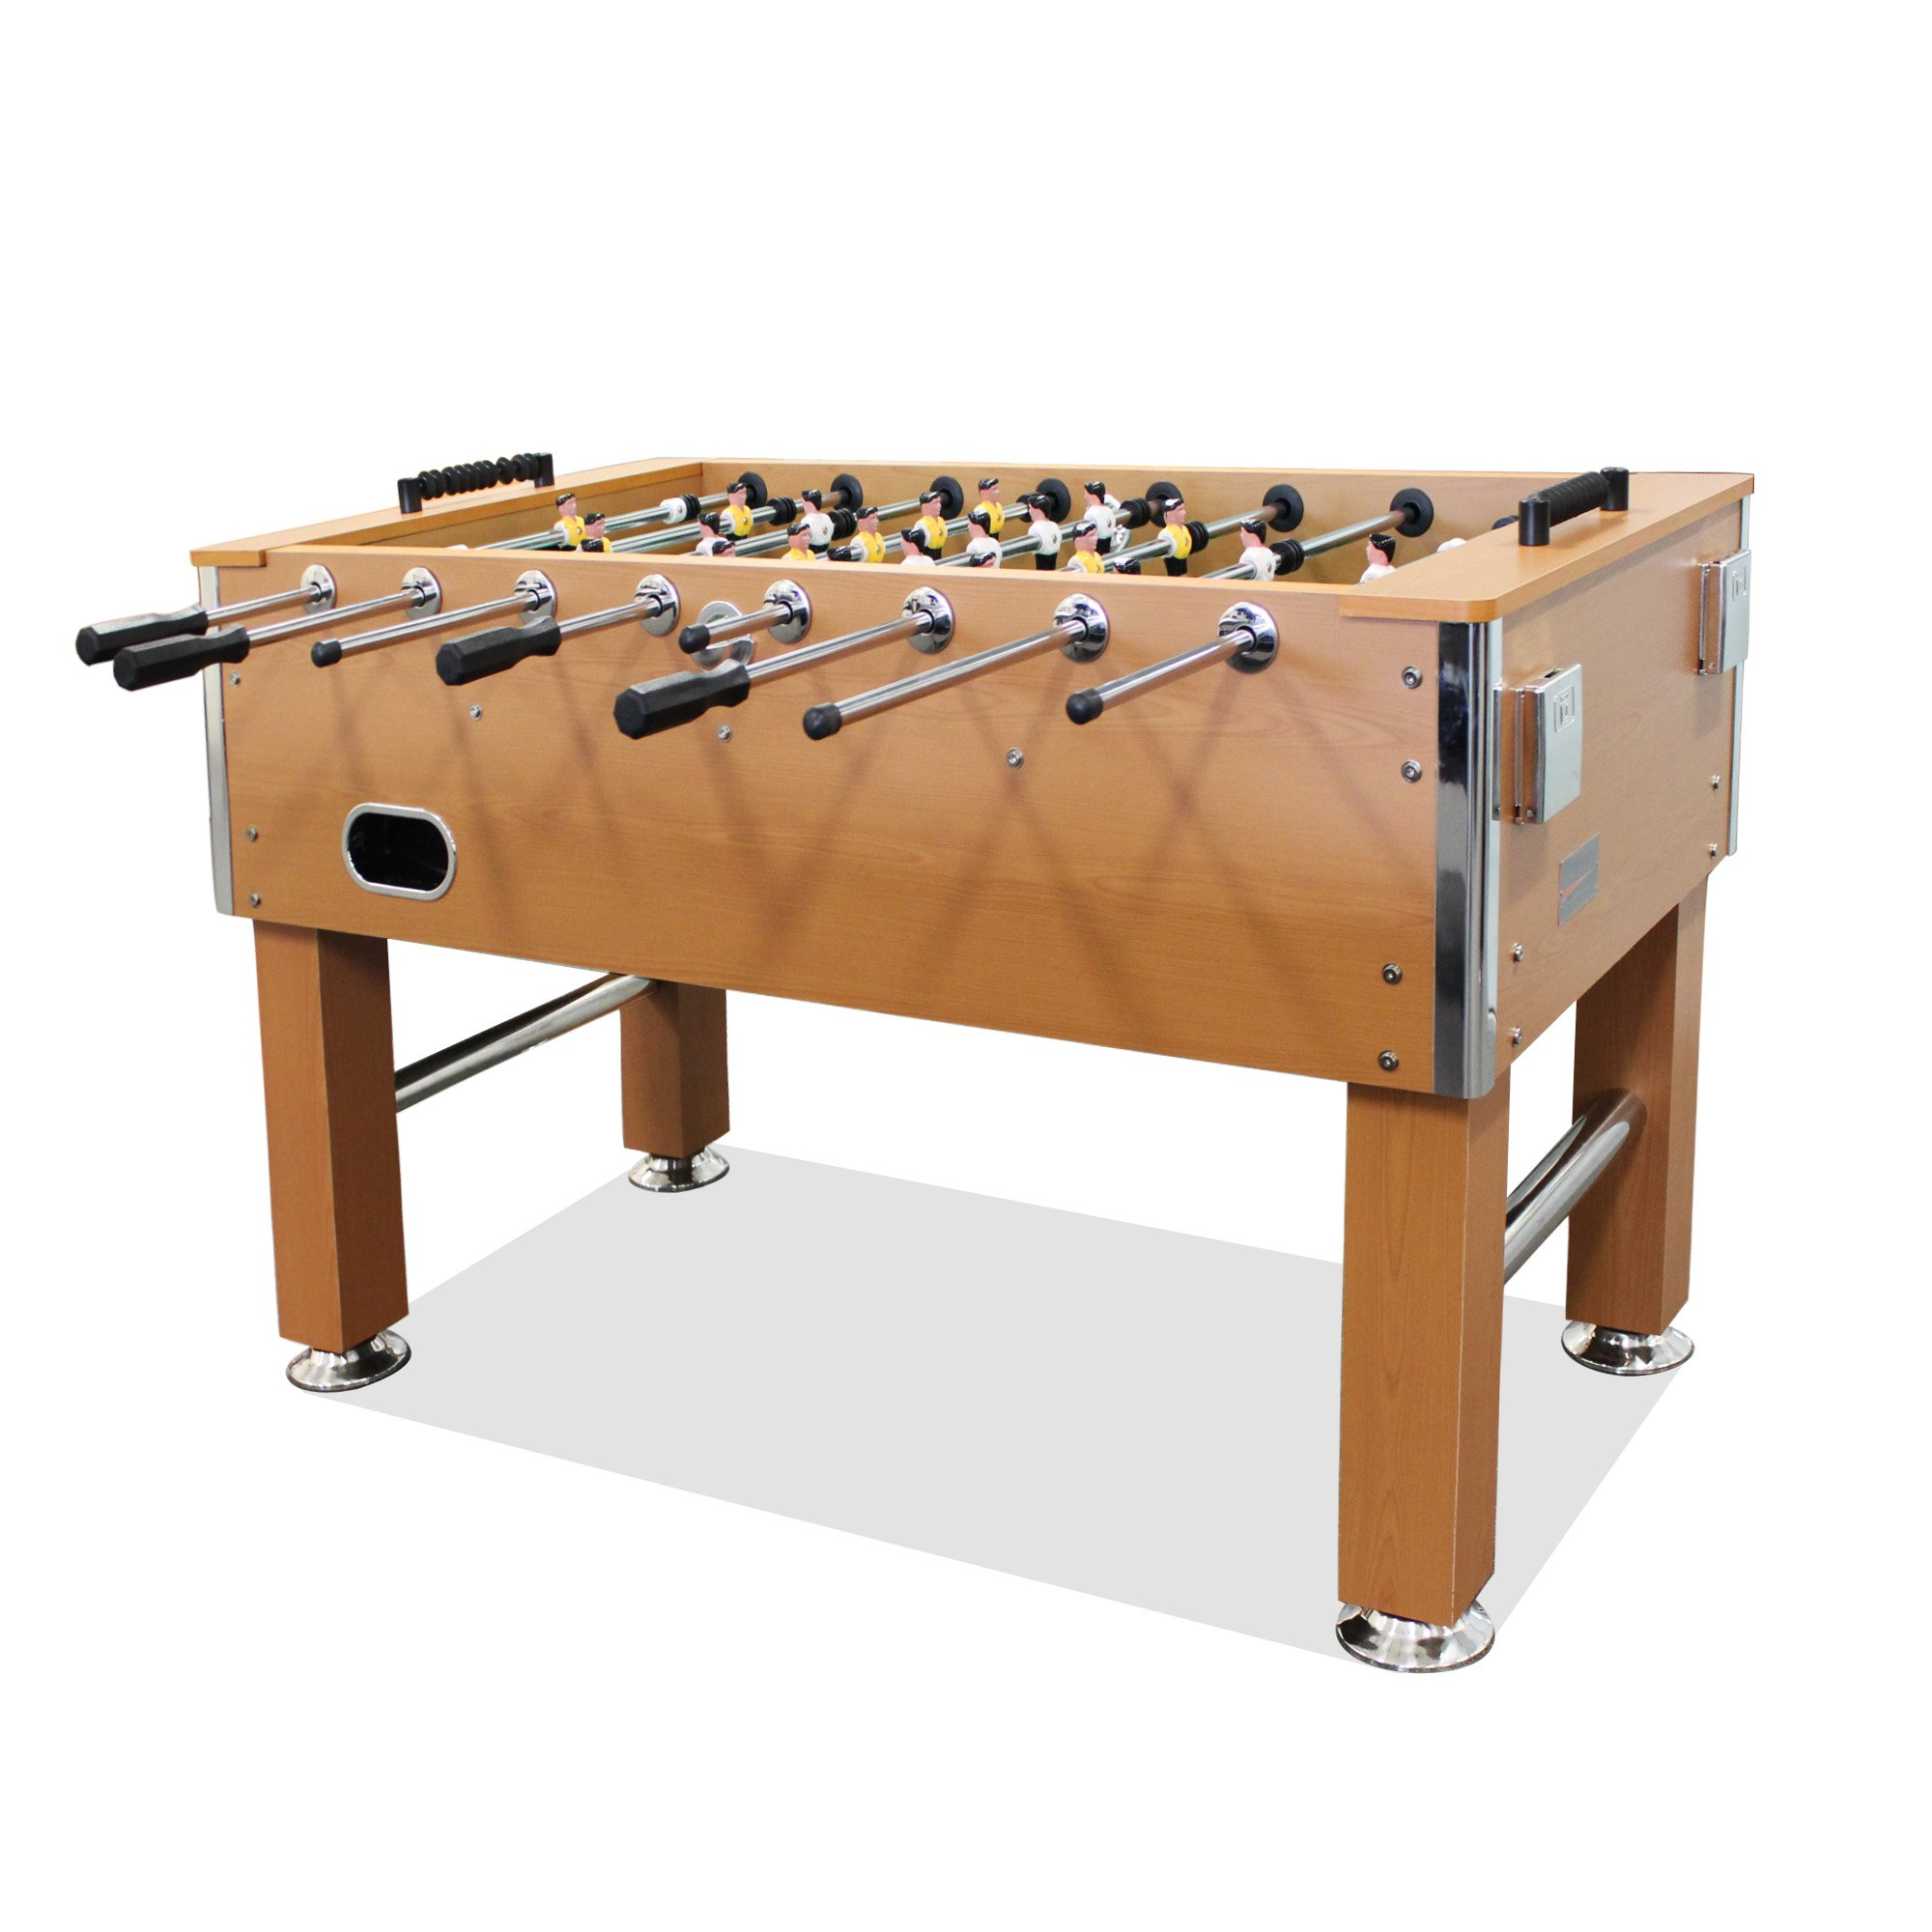 T&R sports 5FT Soccer Foosball Table Heavy Duty for Pub Game Room with Drink Holders, Oak by T&R sports